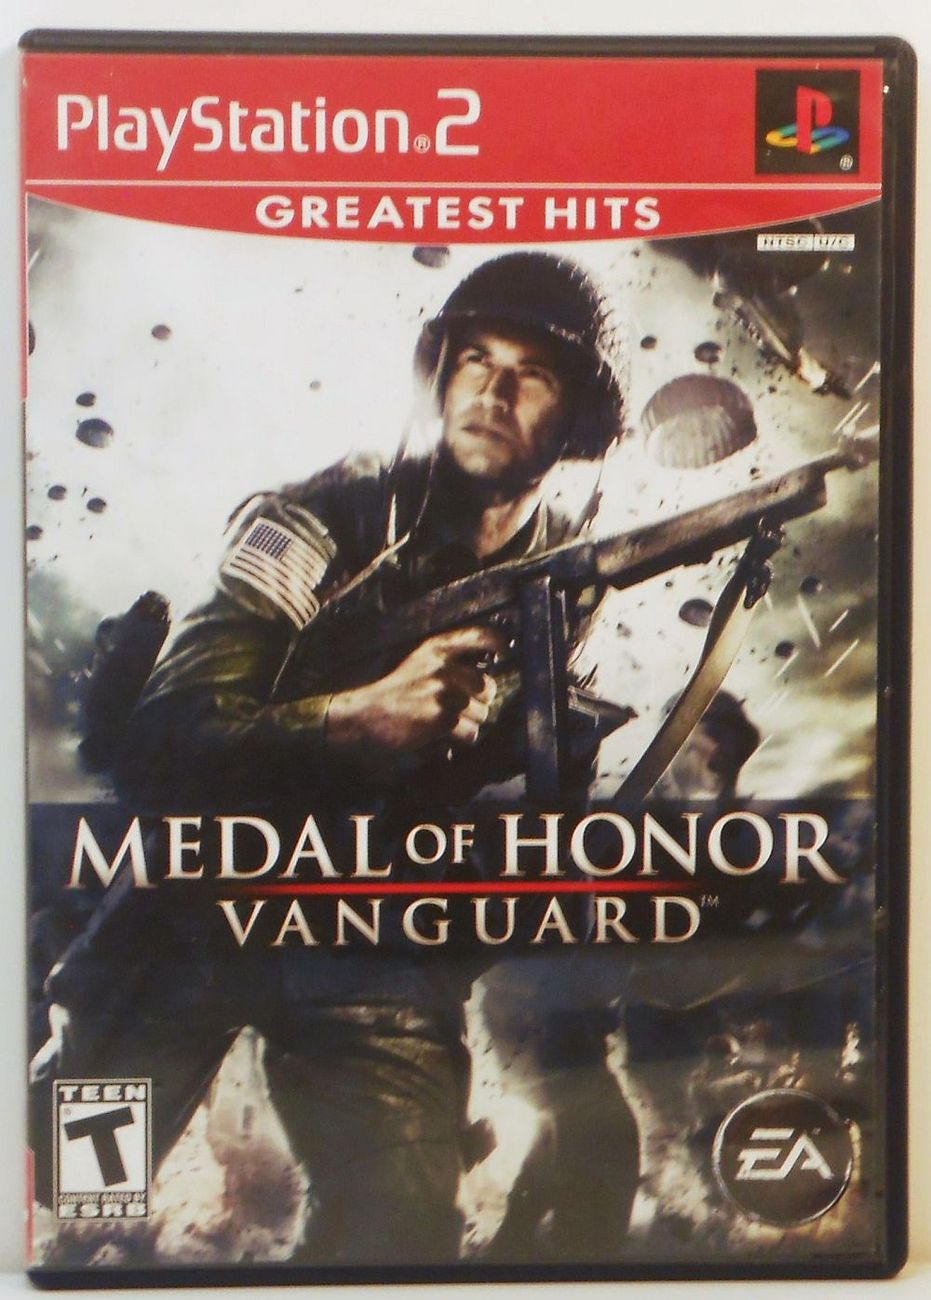 Medal of Honor Vanguard Playstation 2 video game 2007